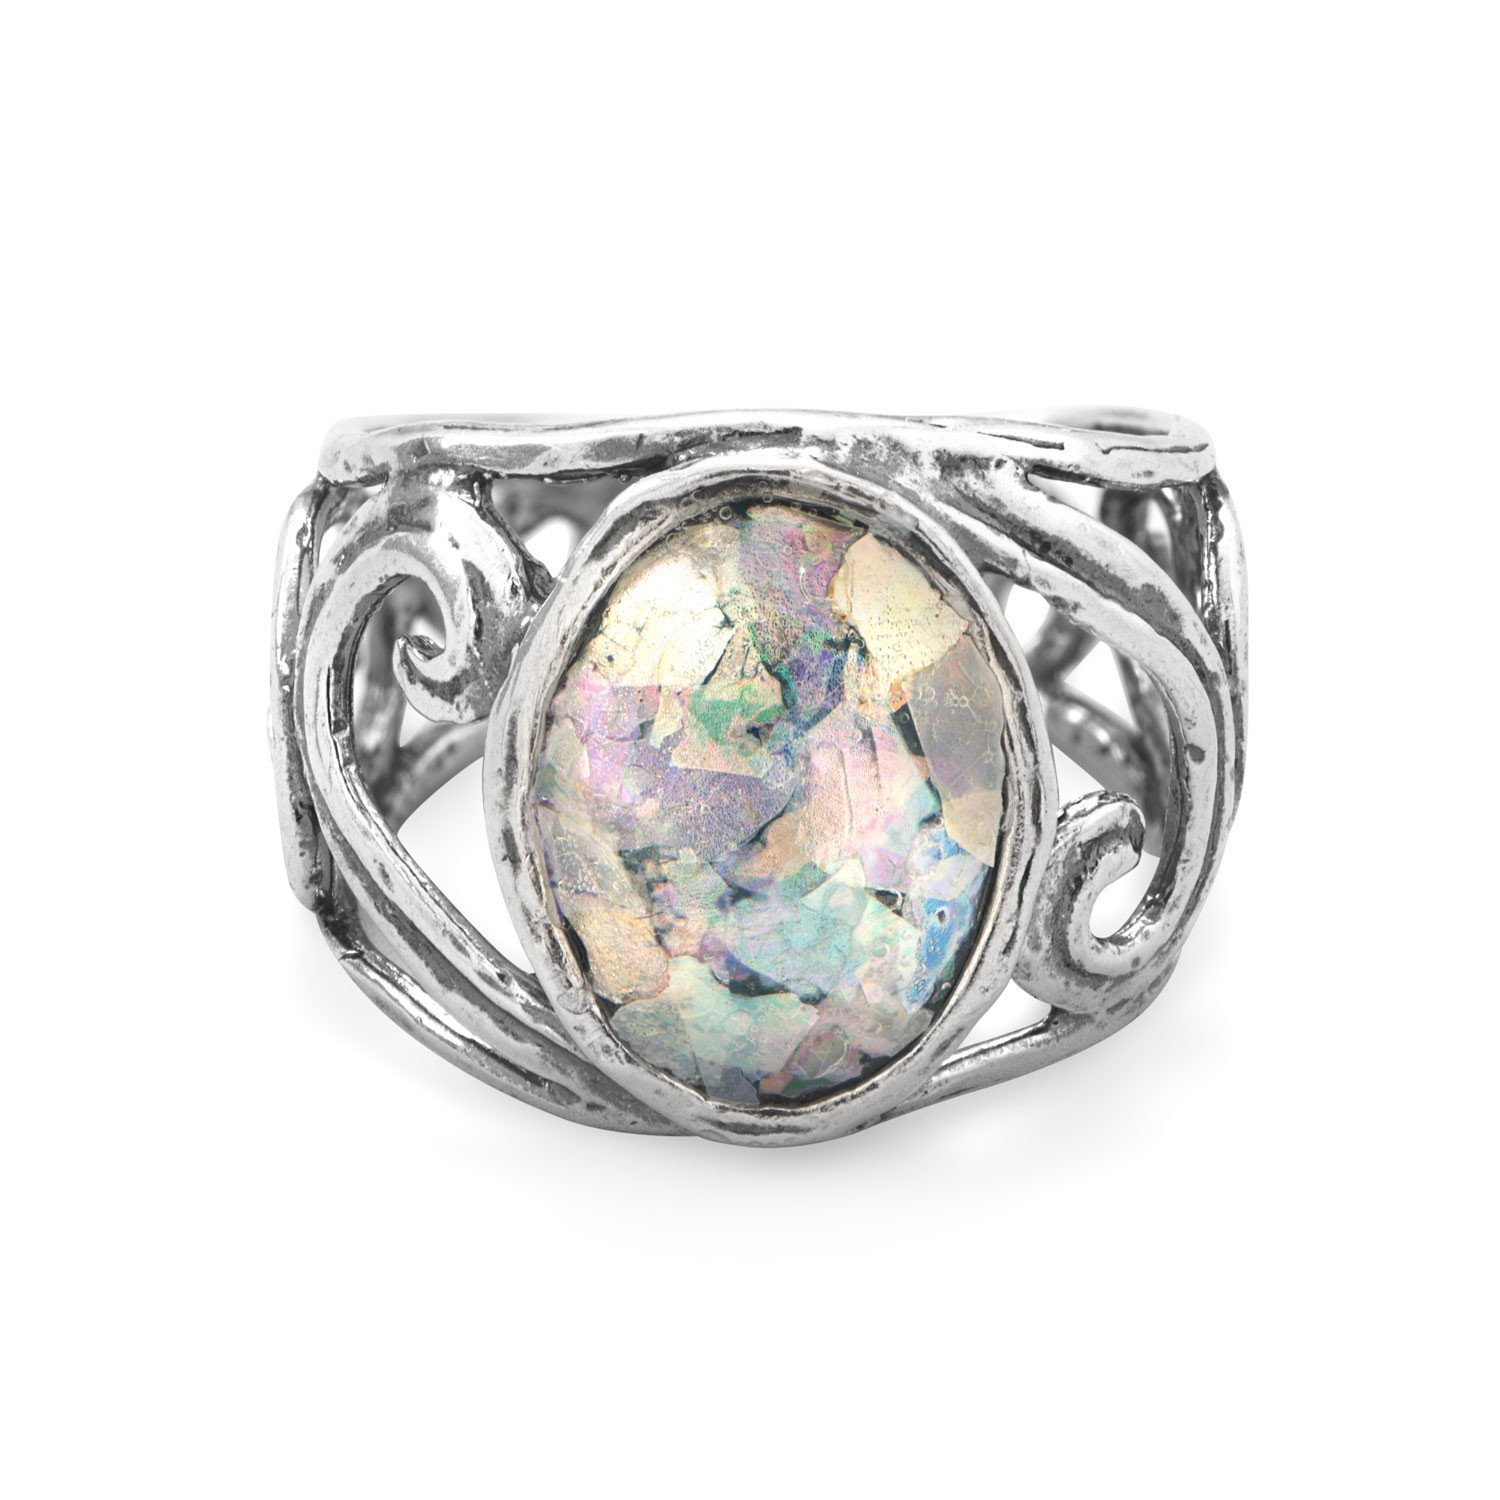 Sterling Silver Cut Out Swirl Design Ring with Roman Glass